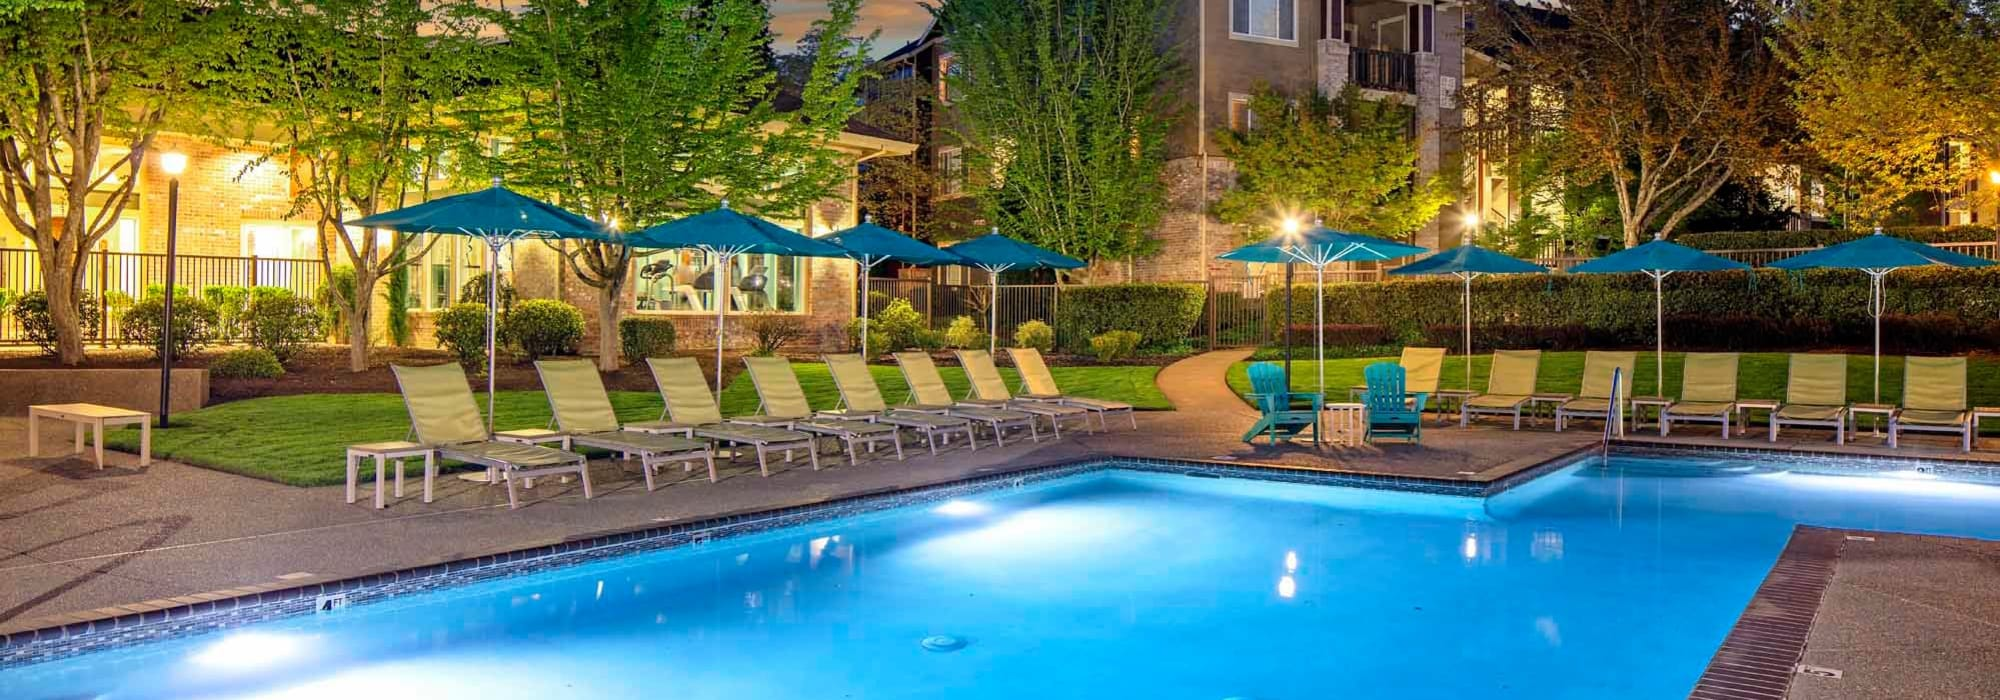 Pet friendly living at The Grove at Orenco Station in Hillsboro, Oregon